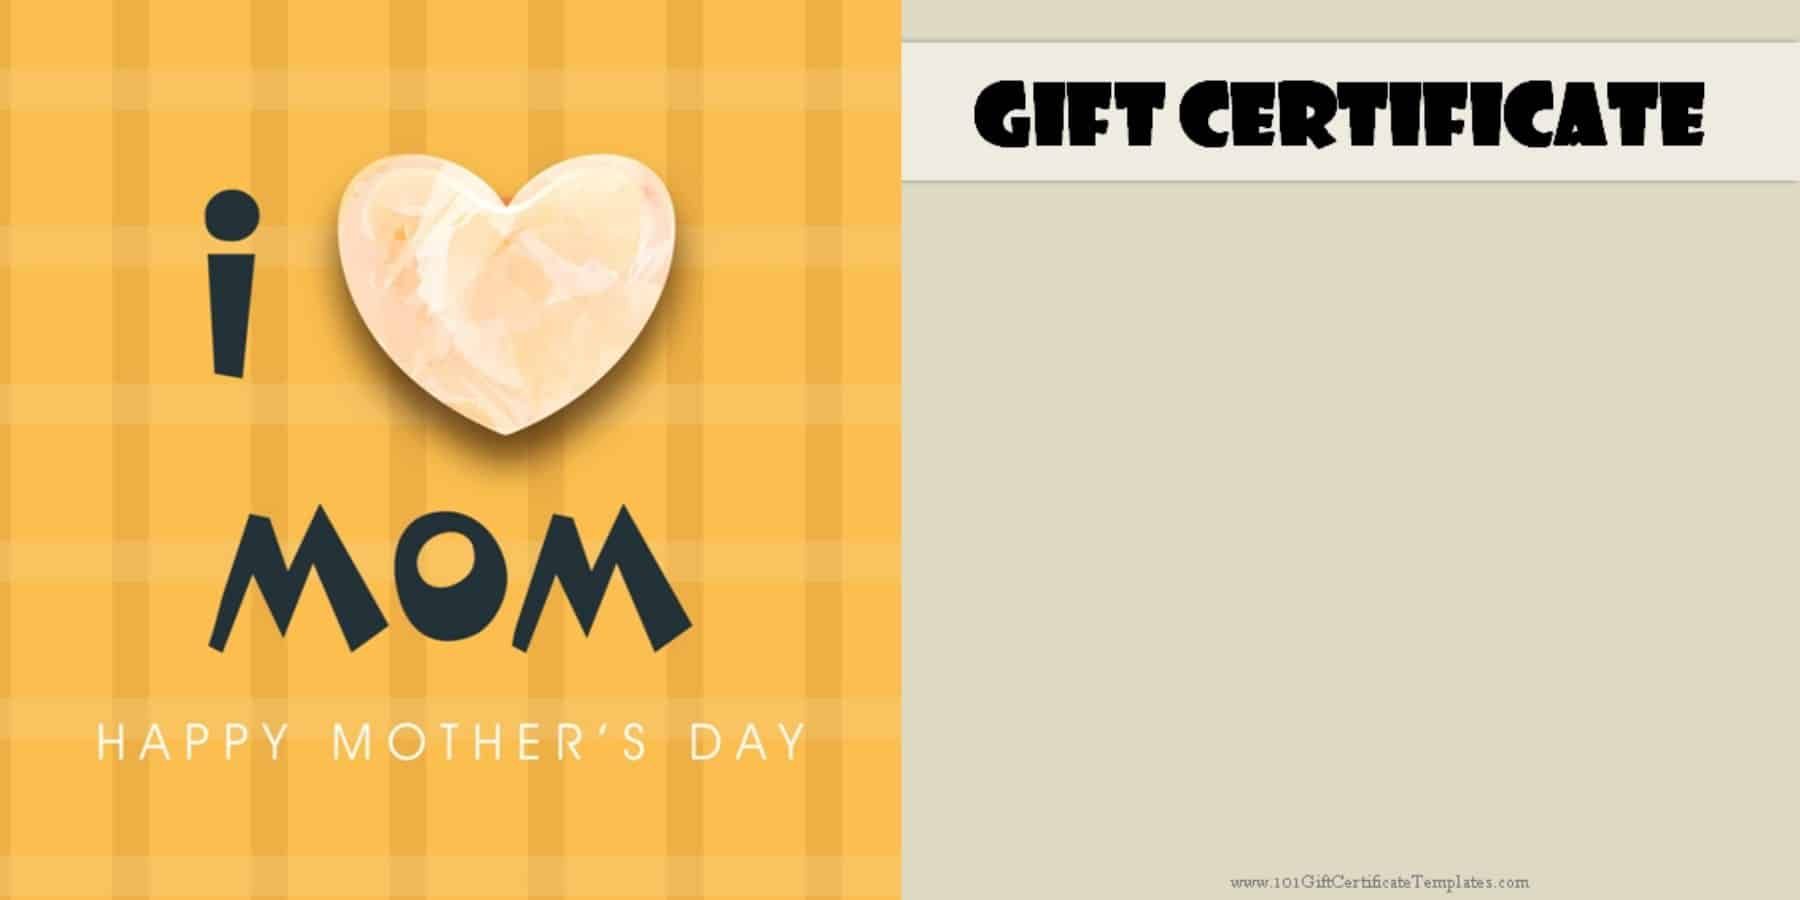 Mothers day gift certificate templates mothers day gift certificate templates xflitez Gallery